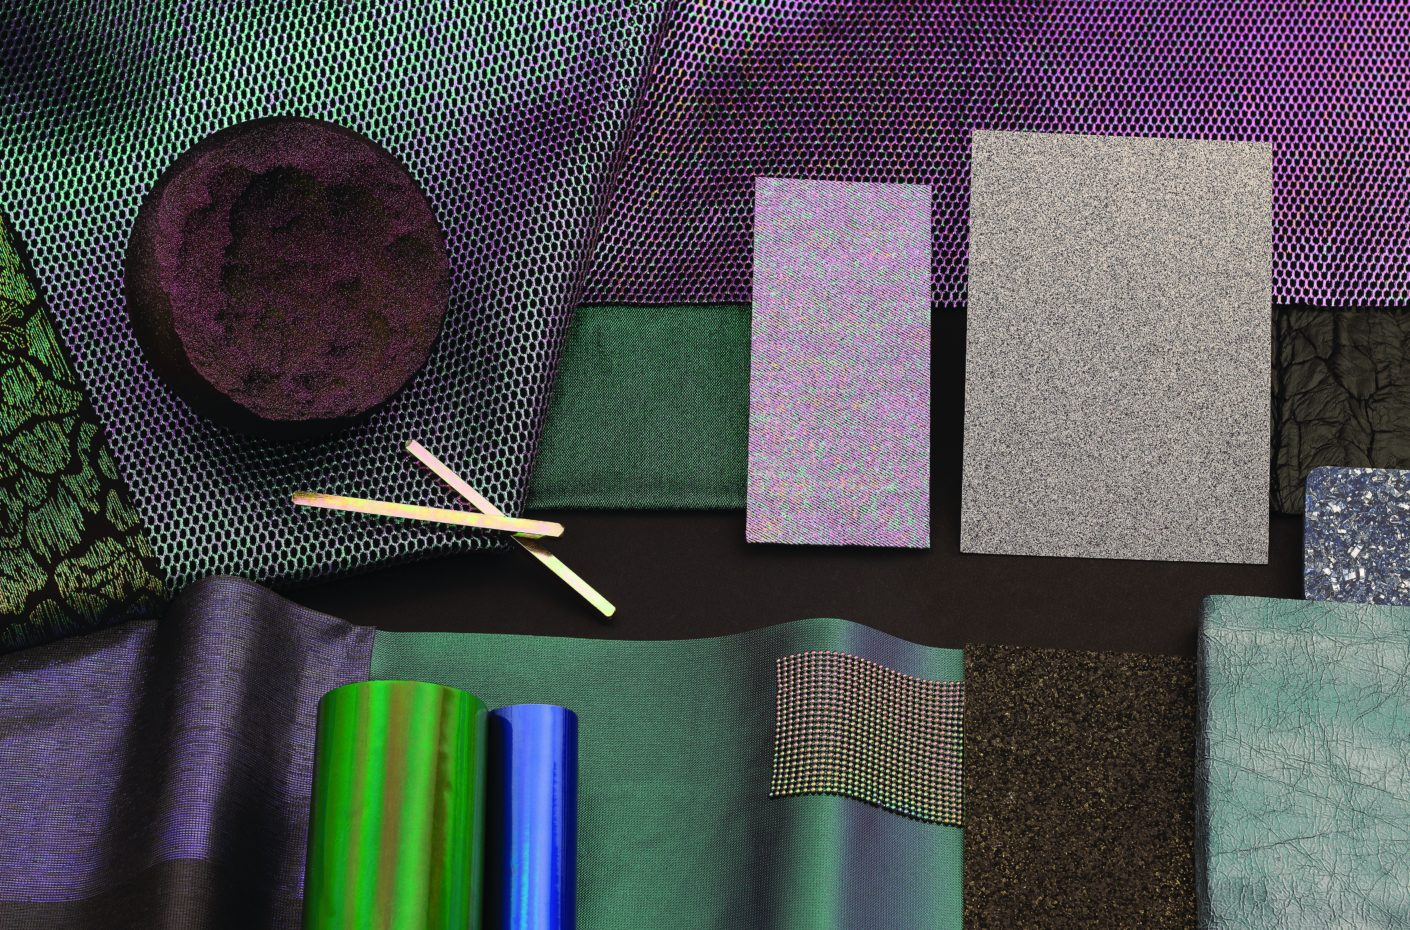 Mineral color tones and coarse surfaces conjure up a cosmic atmosphere in rooms.